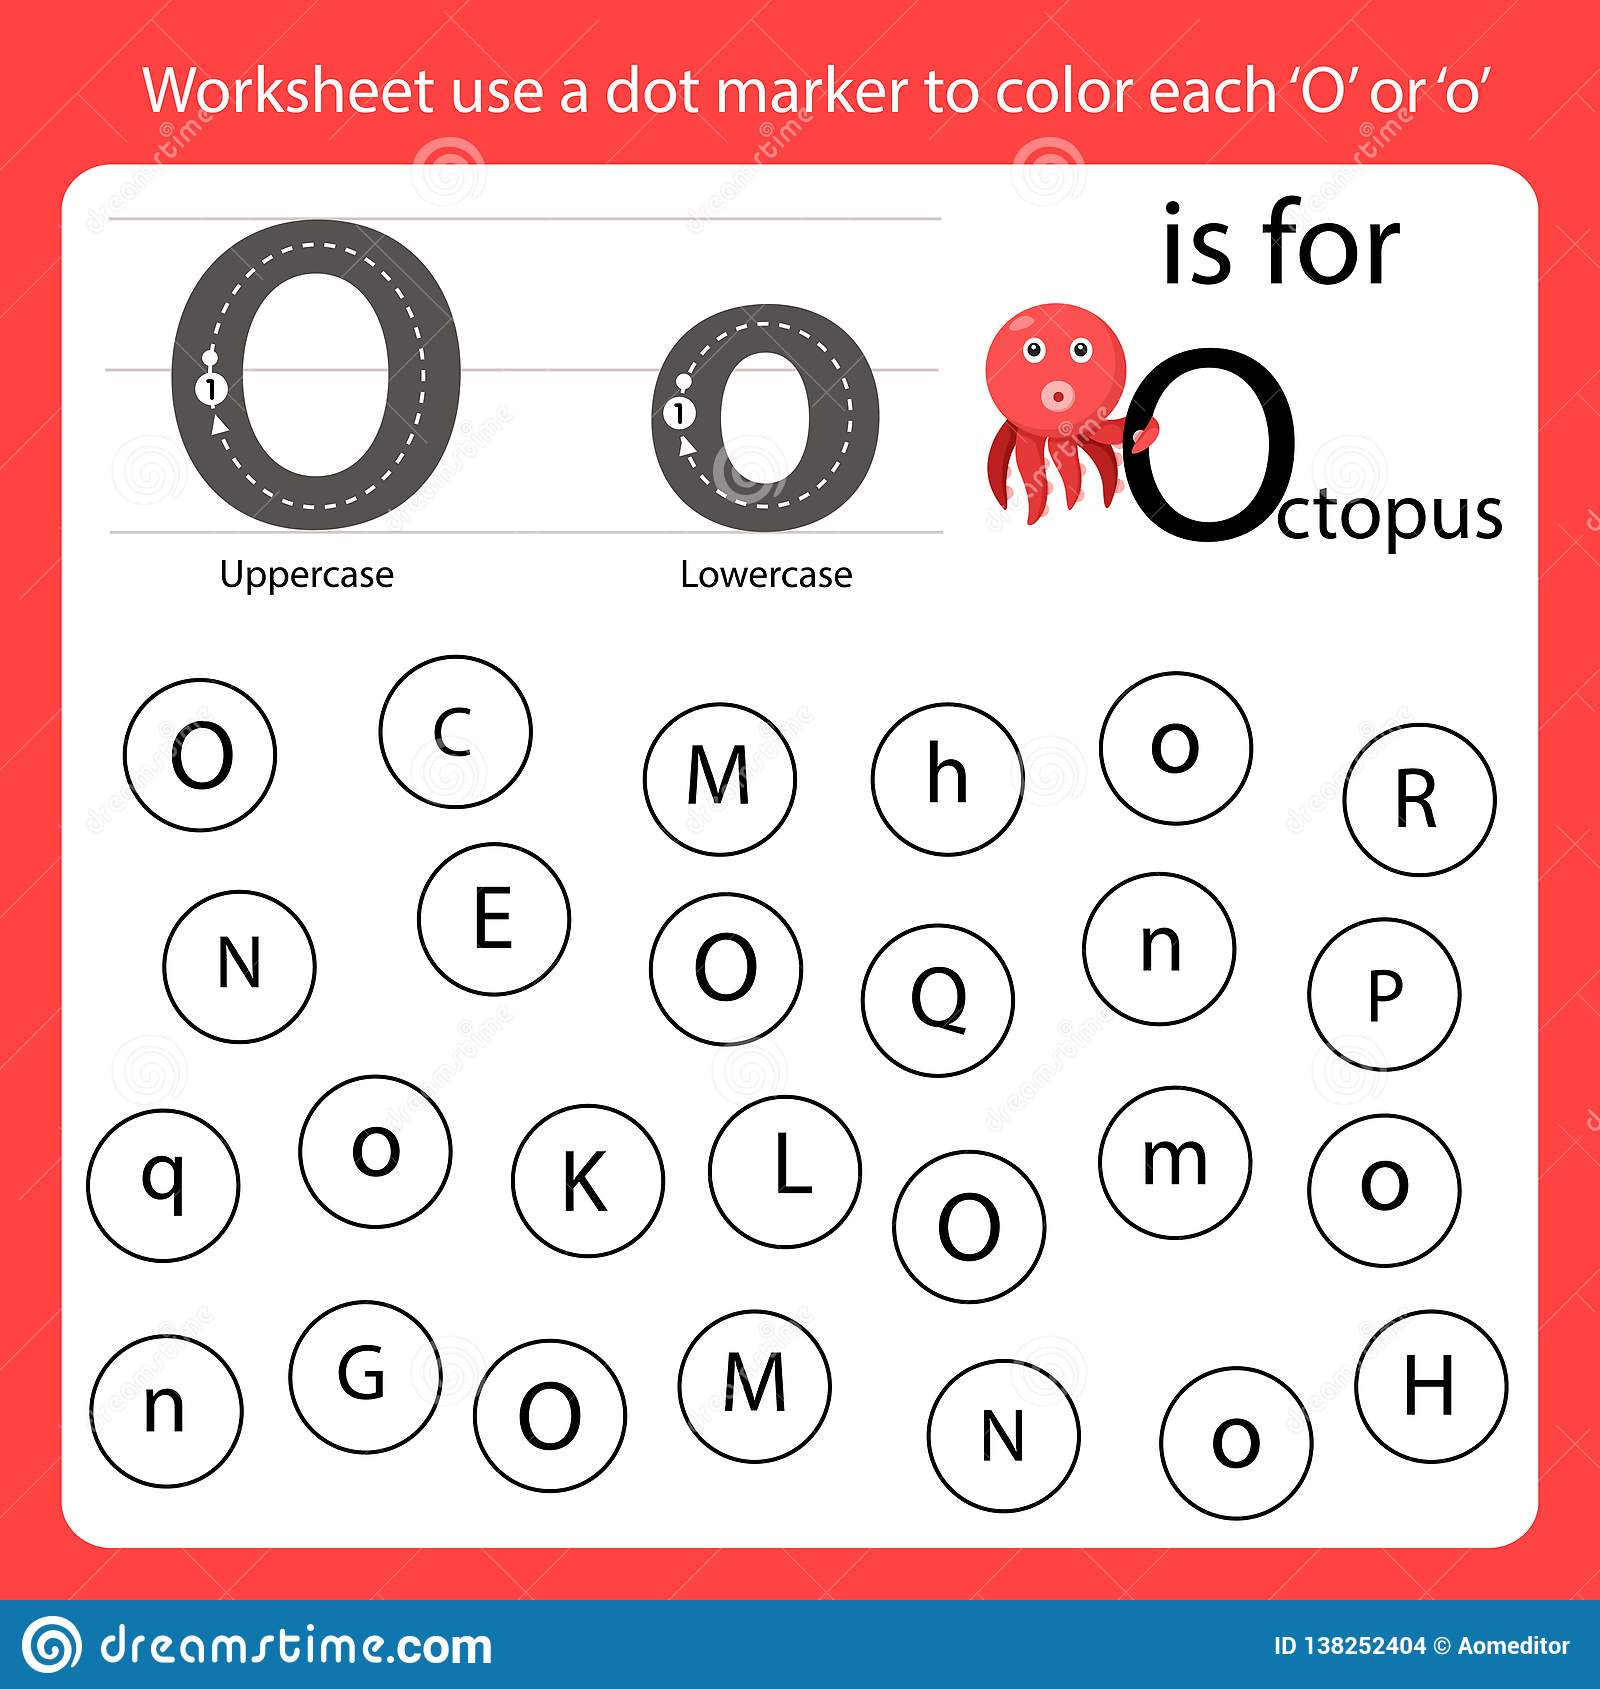 Find The Letter Worksheet Use A Dot Marker To Color Each O